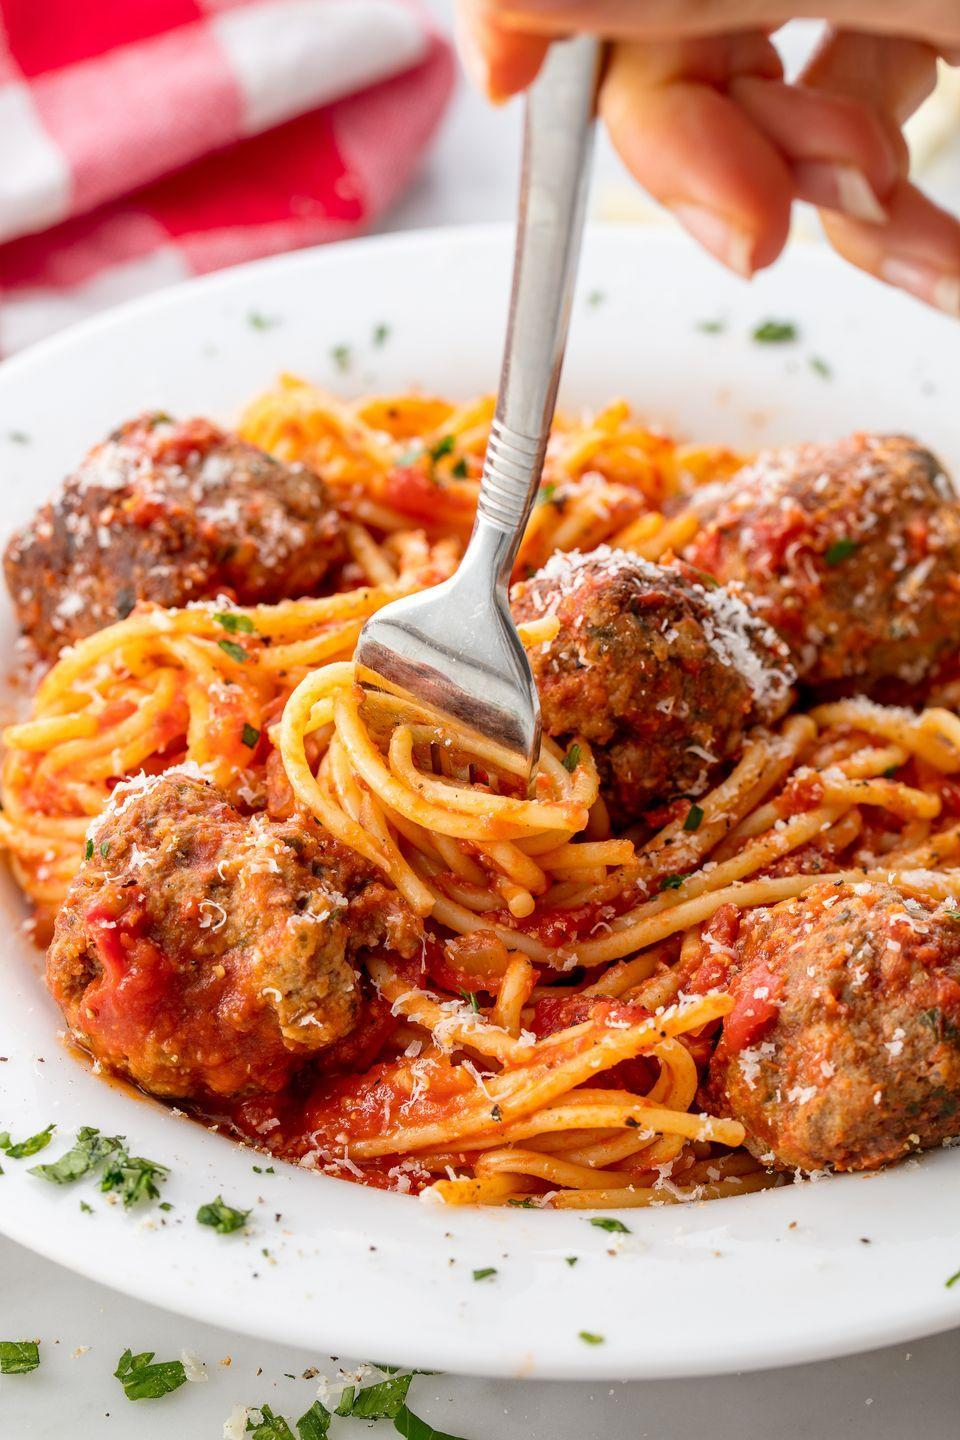 "<p>Making your own meatballs and sauce makes it even better.</p><p>Get the recipe from <a href=""https://www.delish.com/cooking/recipe-ideas/recipes/a55764/best-spaghetti-and-meatballs-recipe/"" rel=""nofollow noopener"" target=""_blank"" data-ylk=""slk:Delish"" class=""link rapid-noclick-resp"">Delish</a>.</p>"